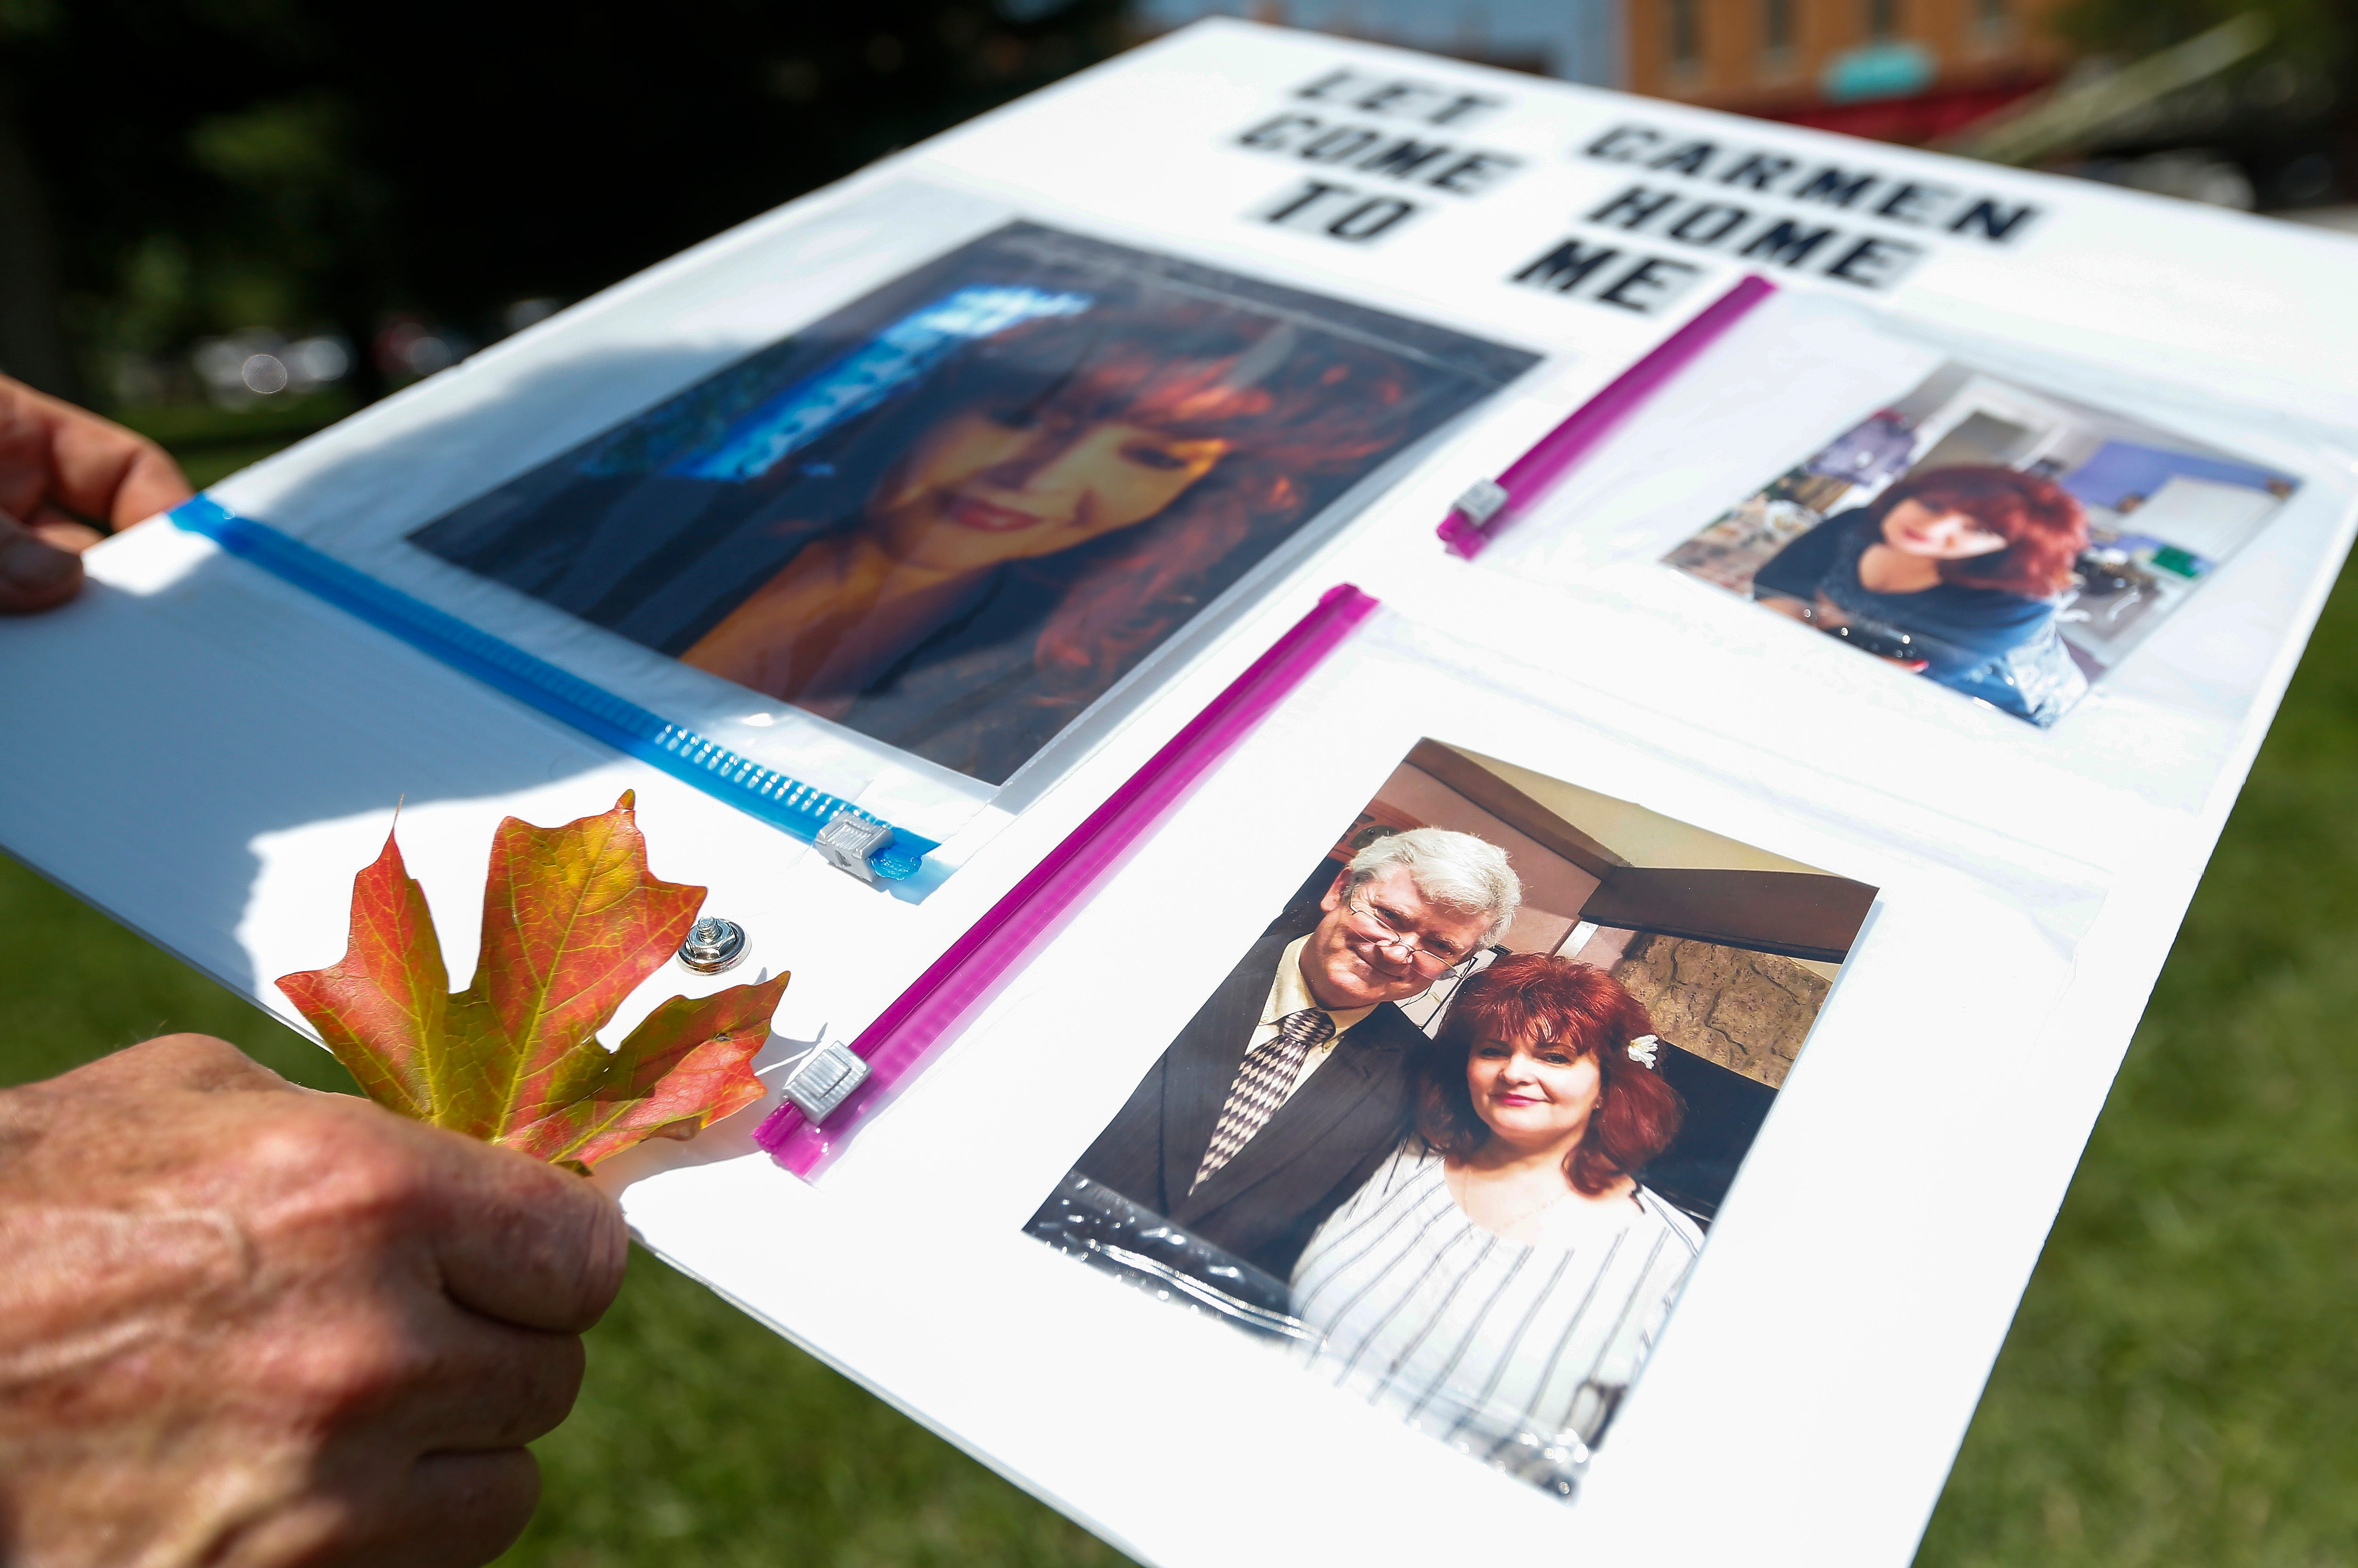 Stuart Foraker holds a sign with pictures of his wife Carmen Foraker on them including a photo from their wedding day at bottom right. Carmen is stuck in Romania because she can't renew her passport.